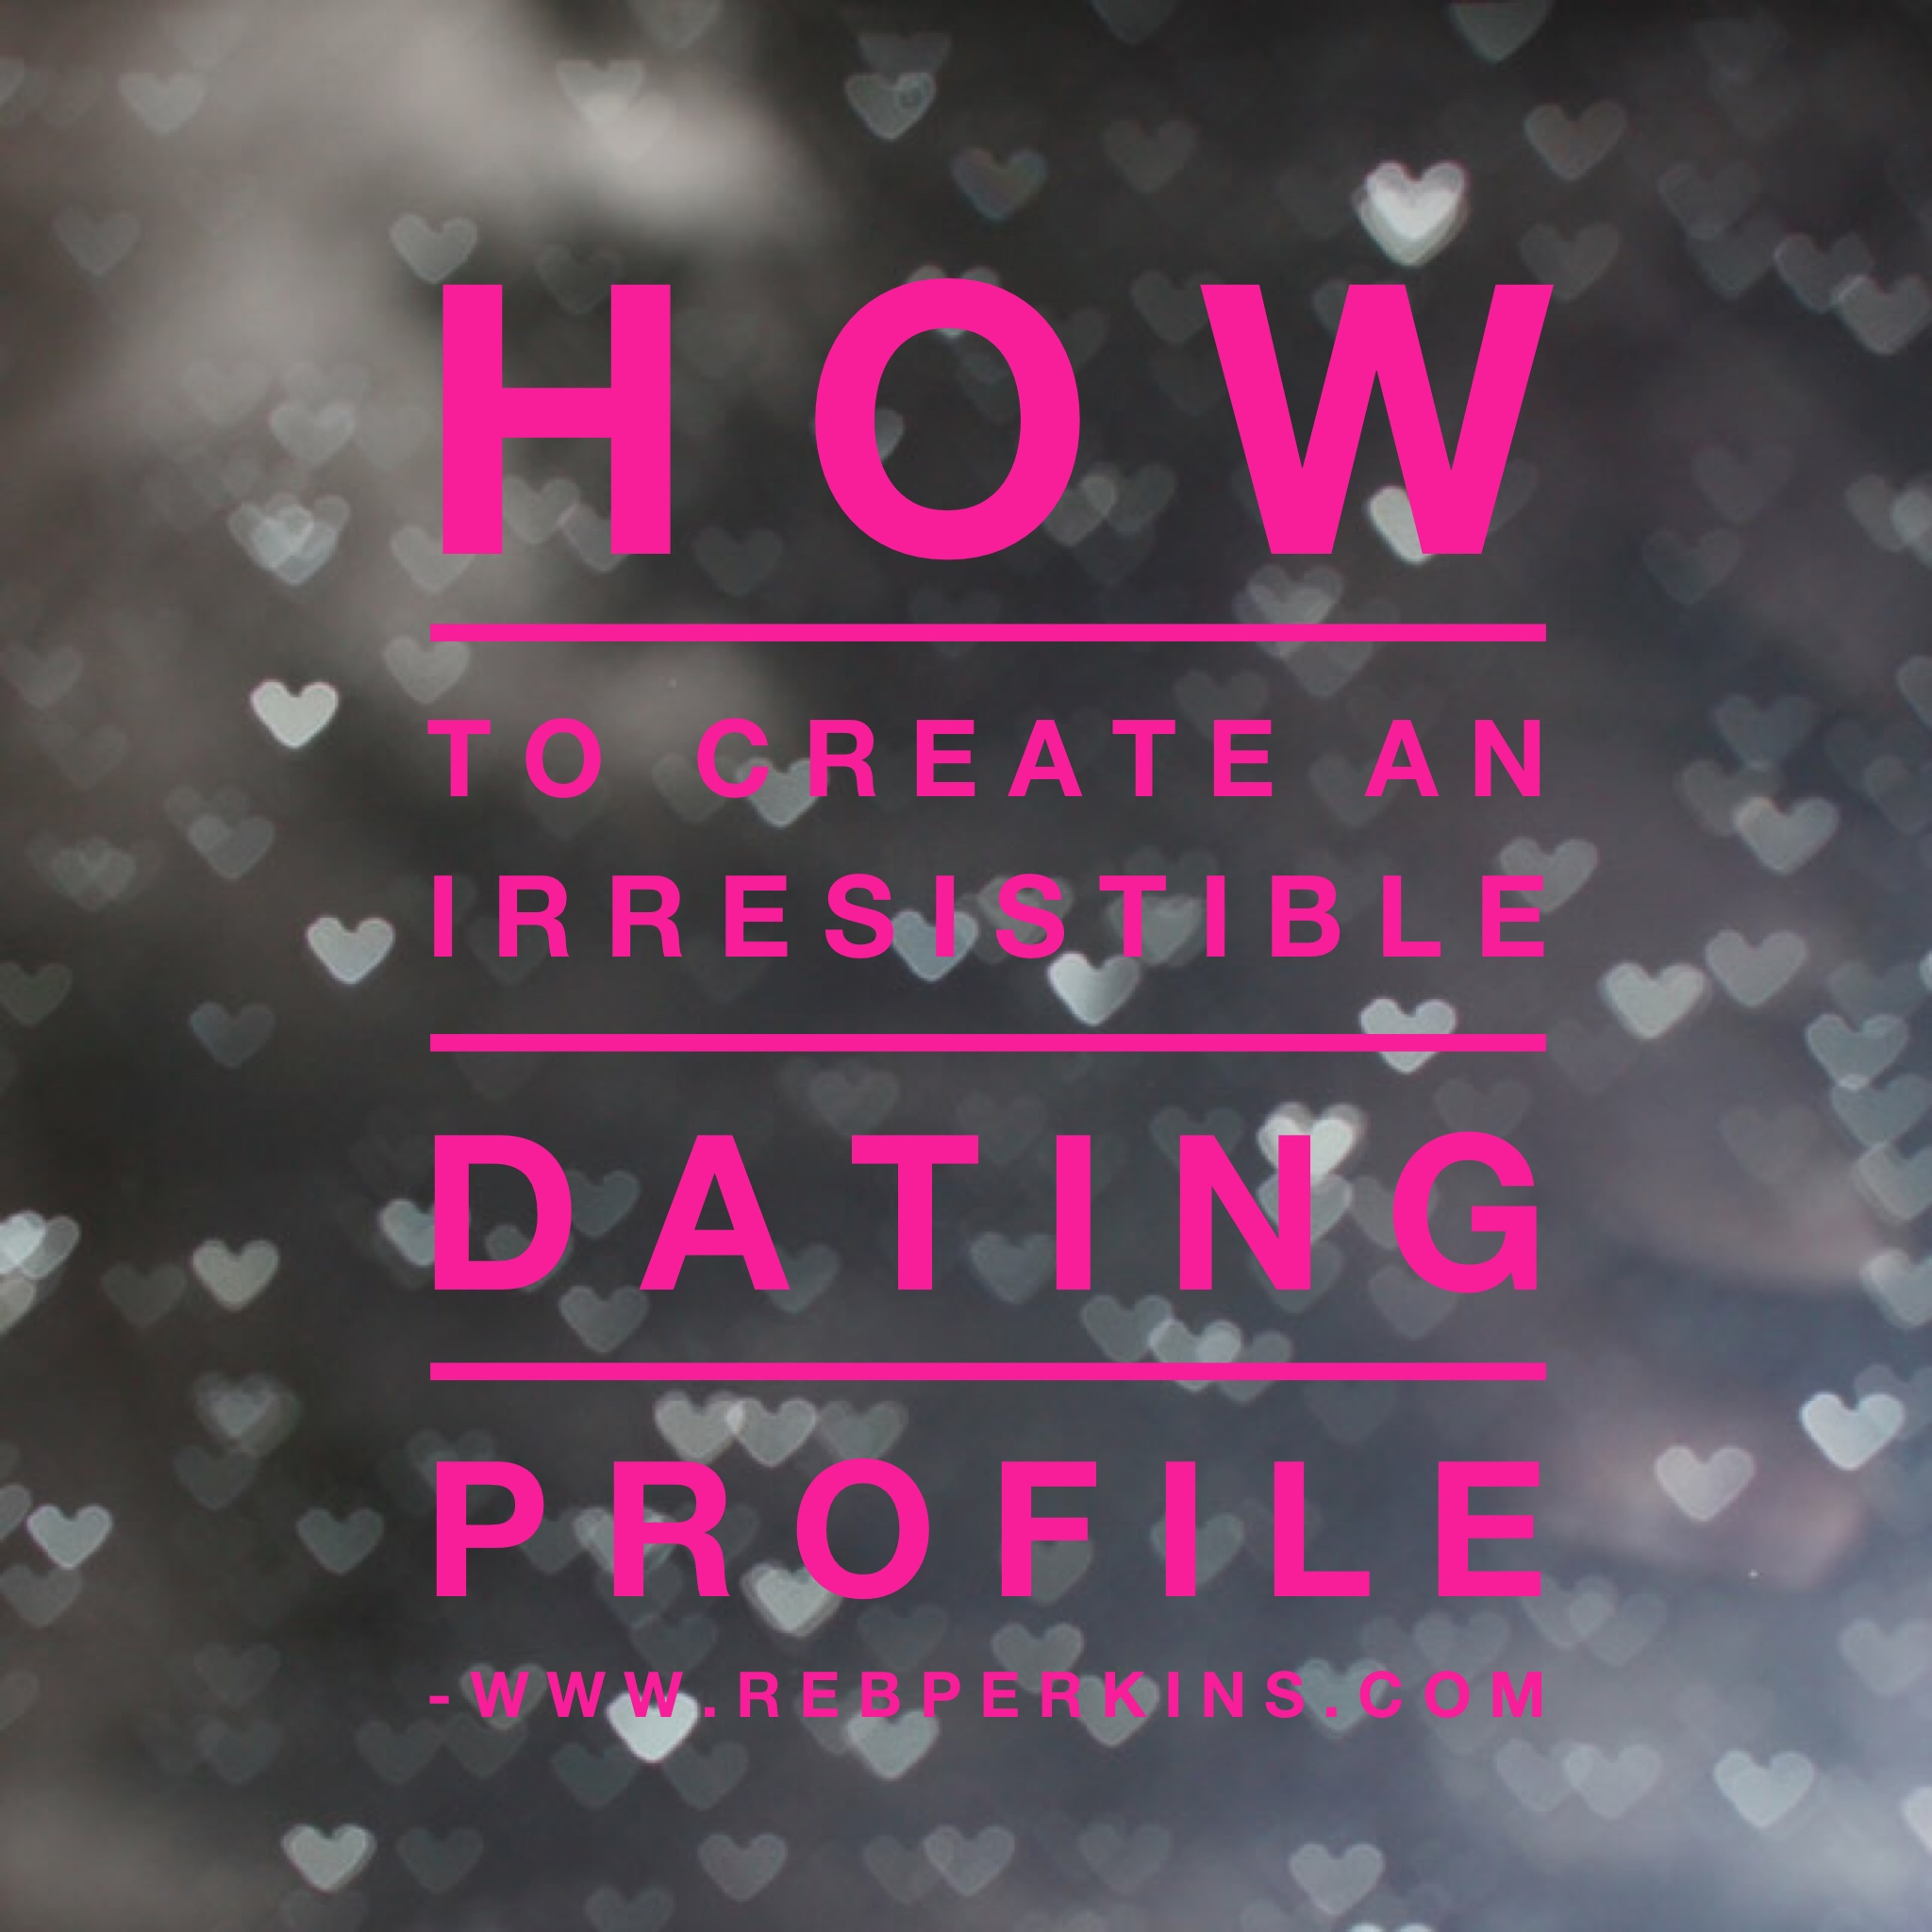 How to describe job online dating